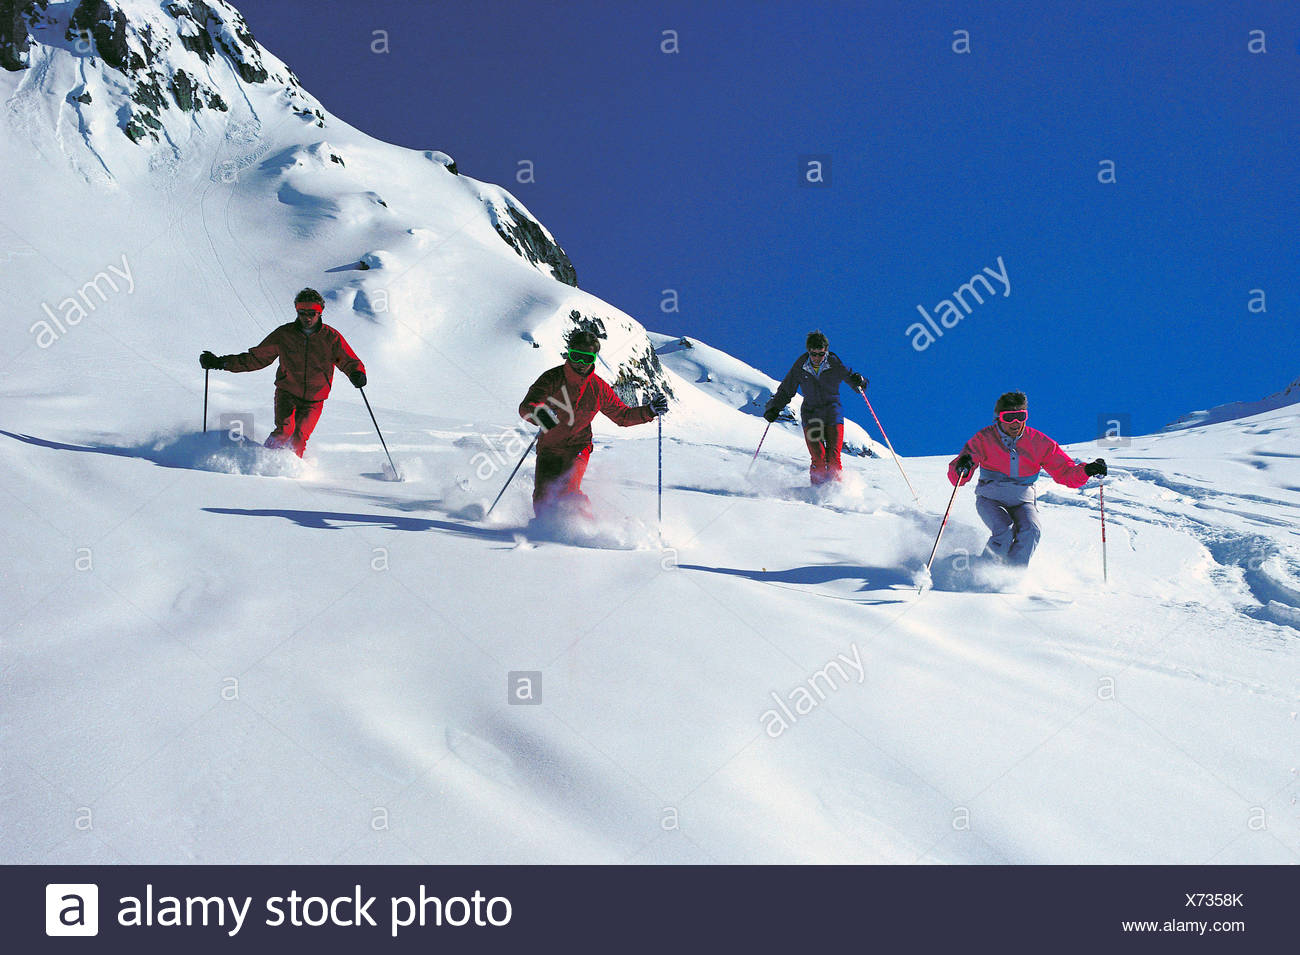 Group of four skiers in white powder snow. - Stock Image